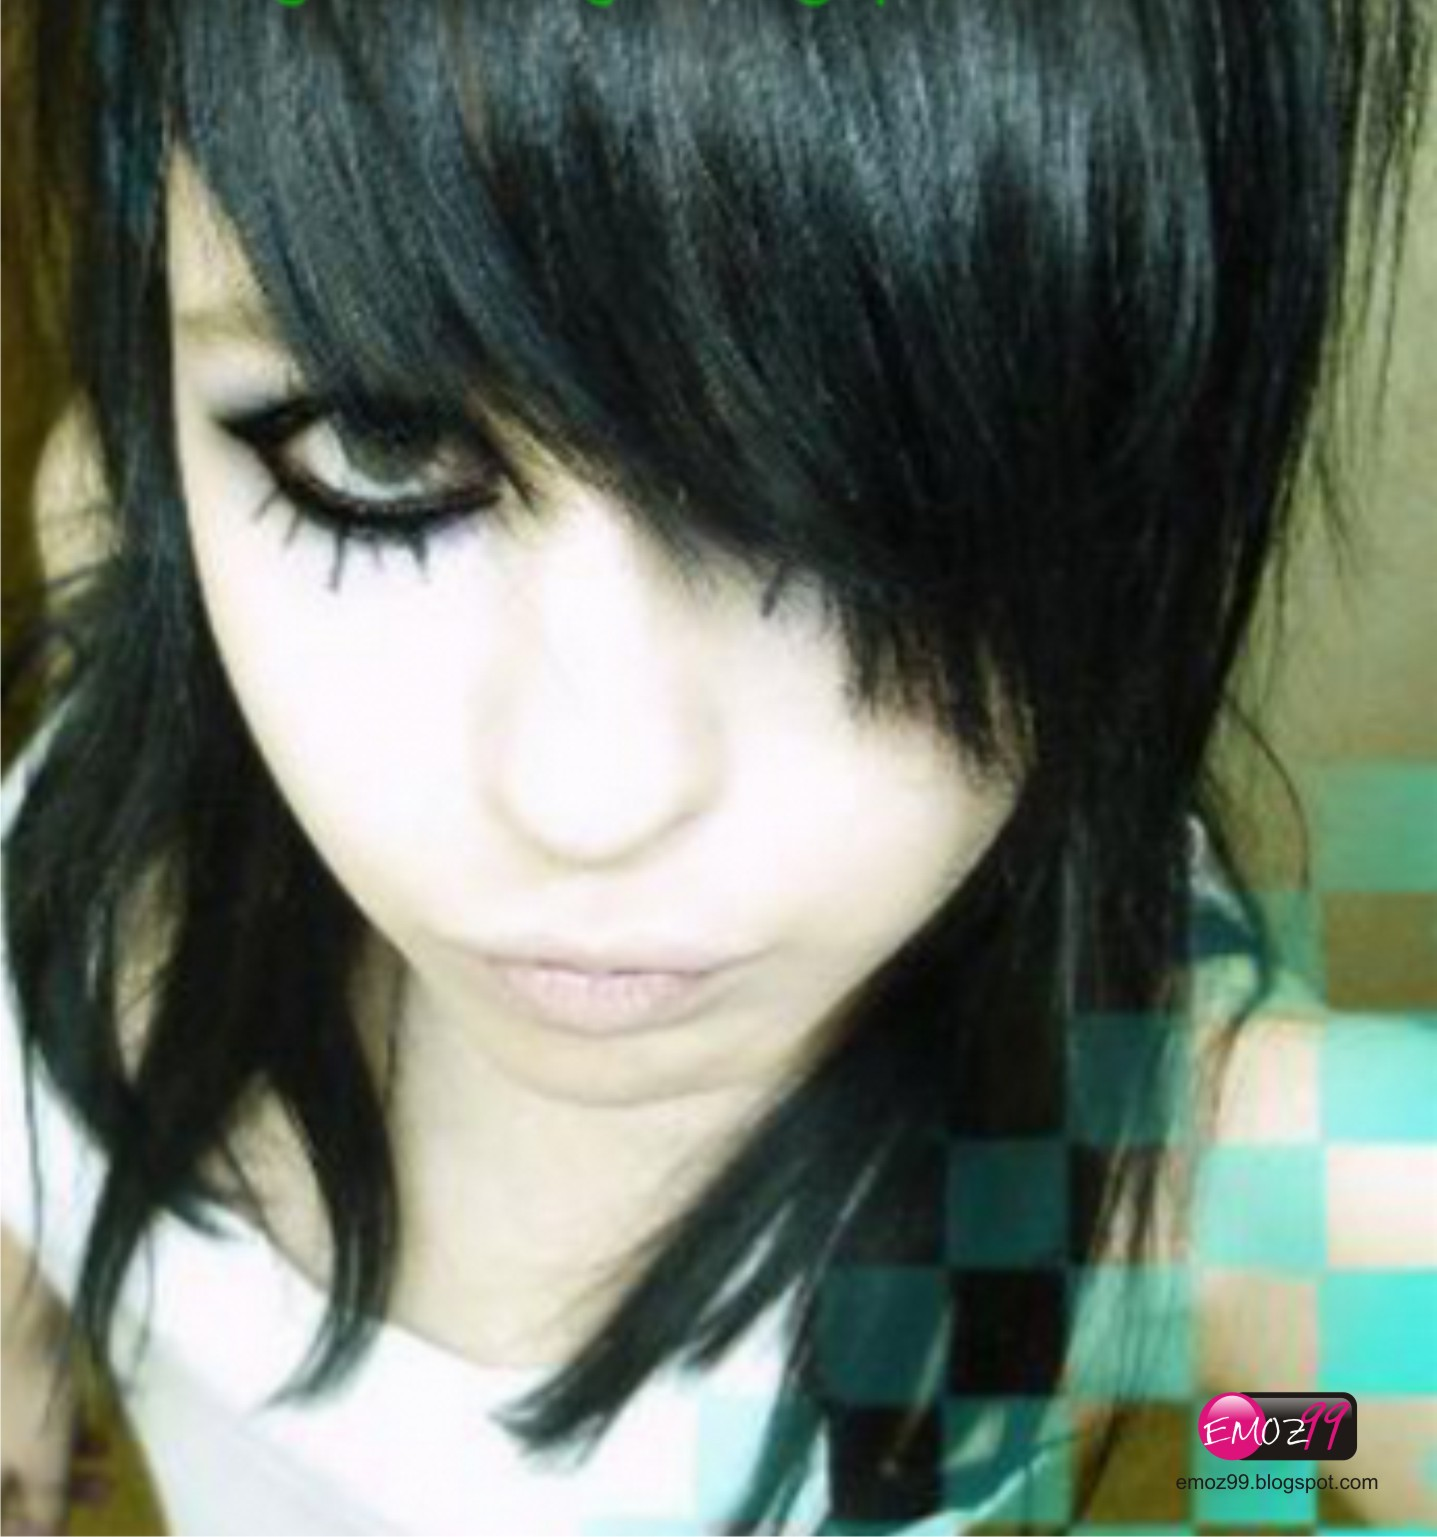 Emo's World: Emo Hair Style # 5